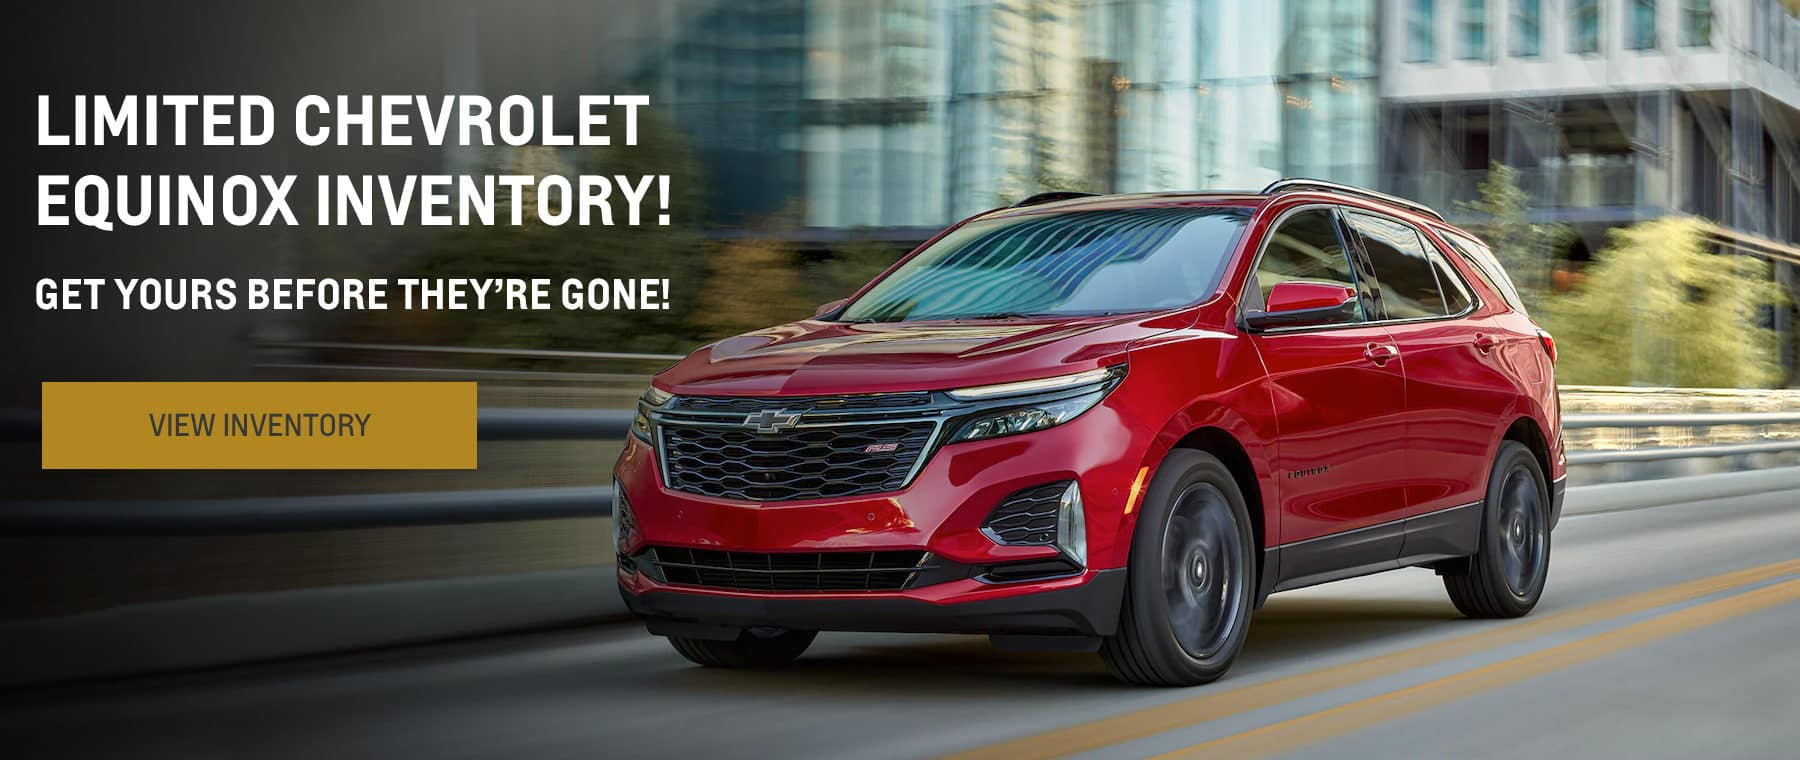 Limited Chevrolet Equinox Inventory! Get It Before It's Gone!